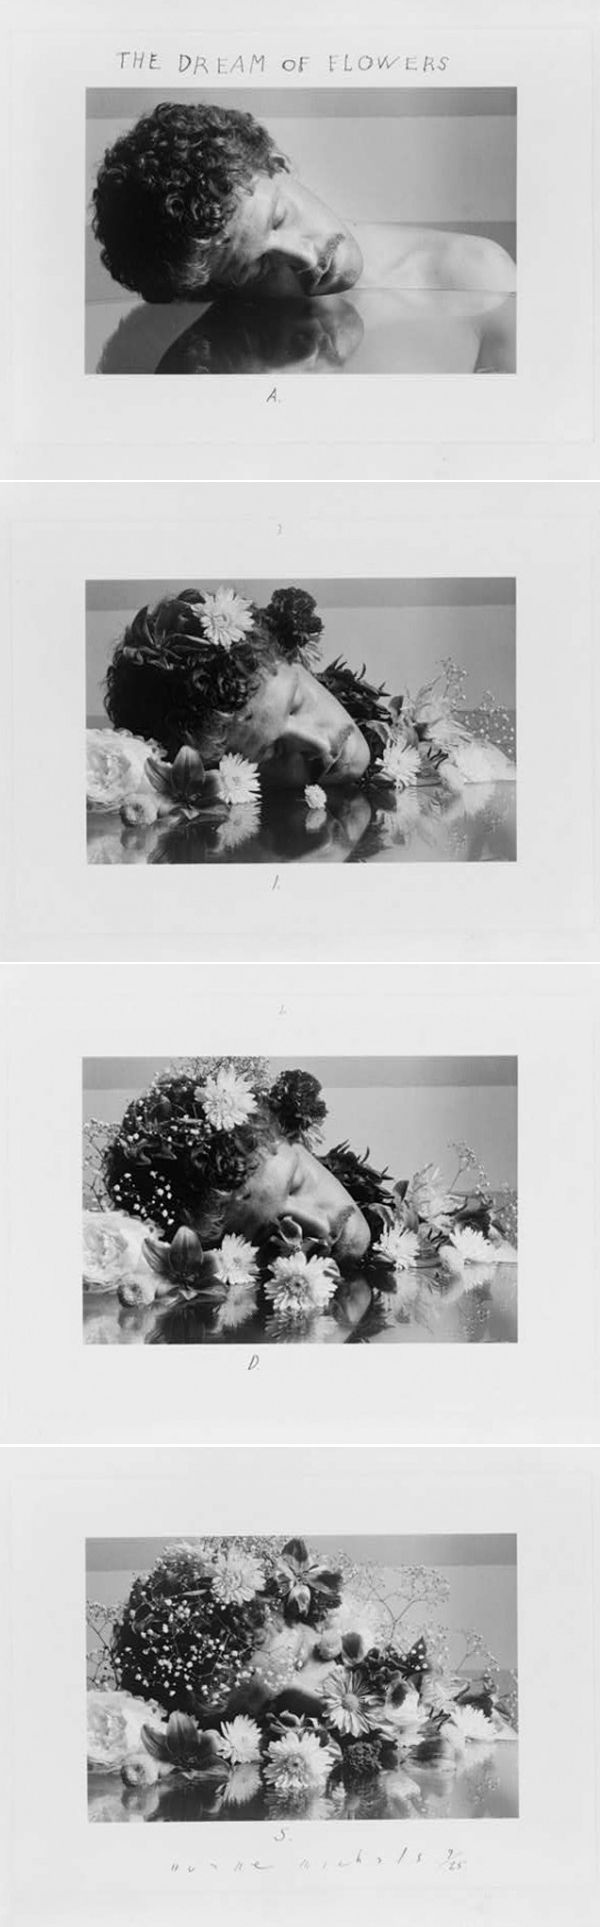 Duane Michals The Dream Of Flowers 1986 Http En Wikipedia Org Wiki Duane Michals Duane Michals Narrative Photography Sequence Photography